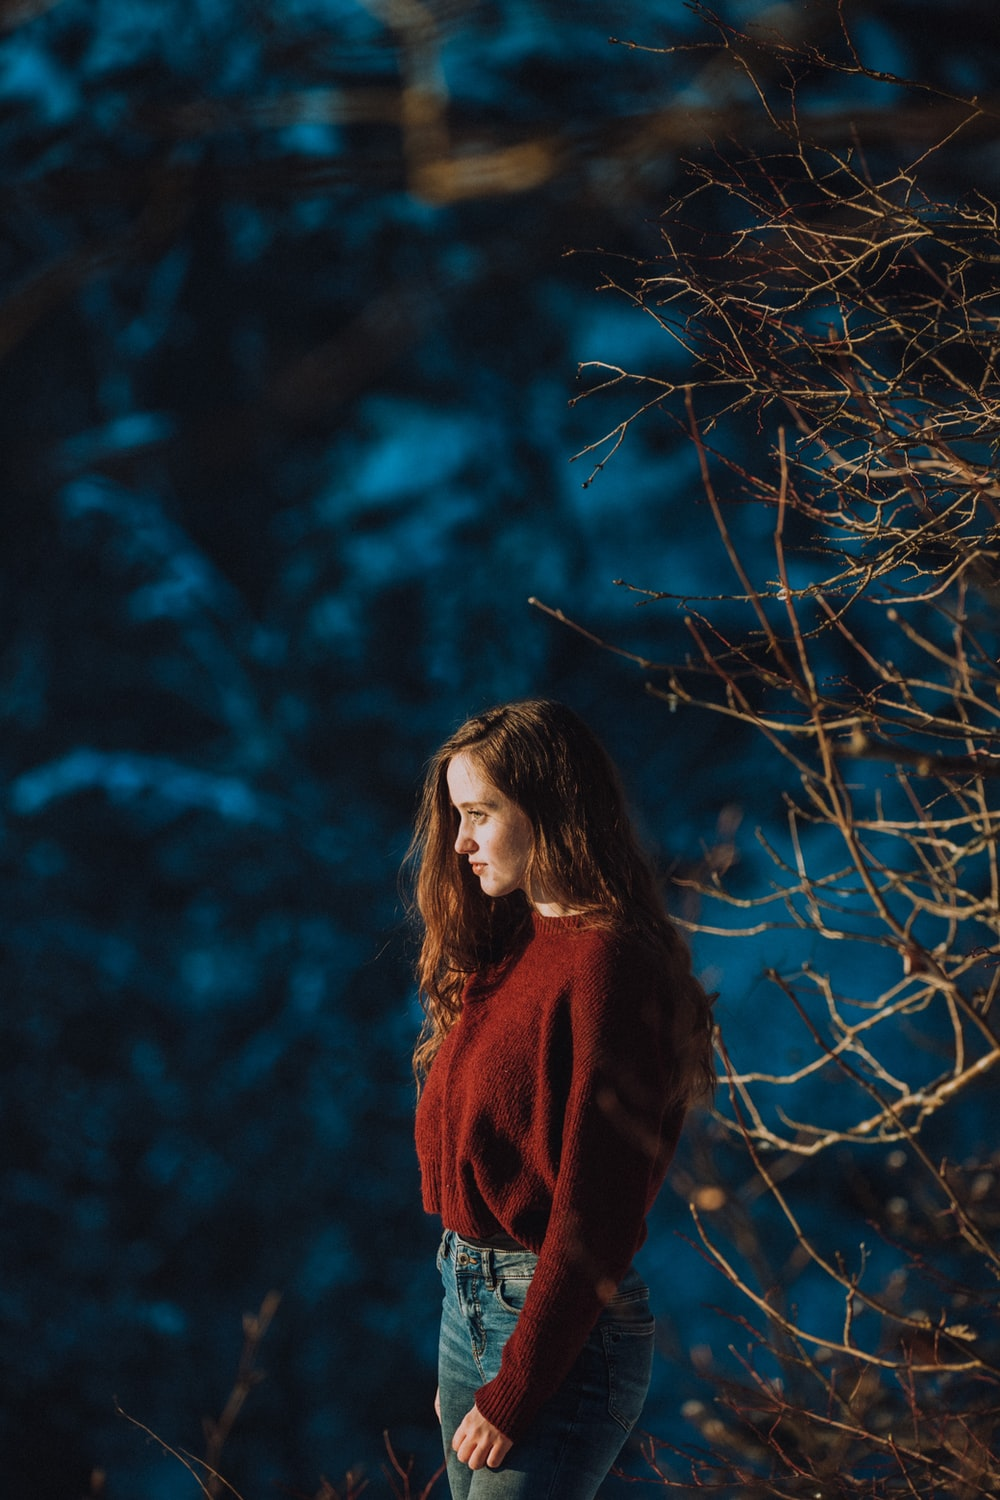 woman in red and black scarf standing near bare tree